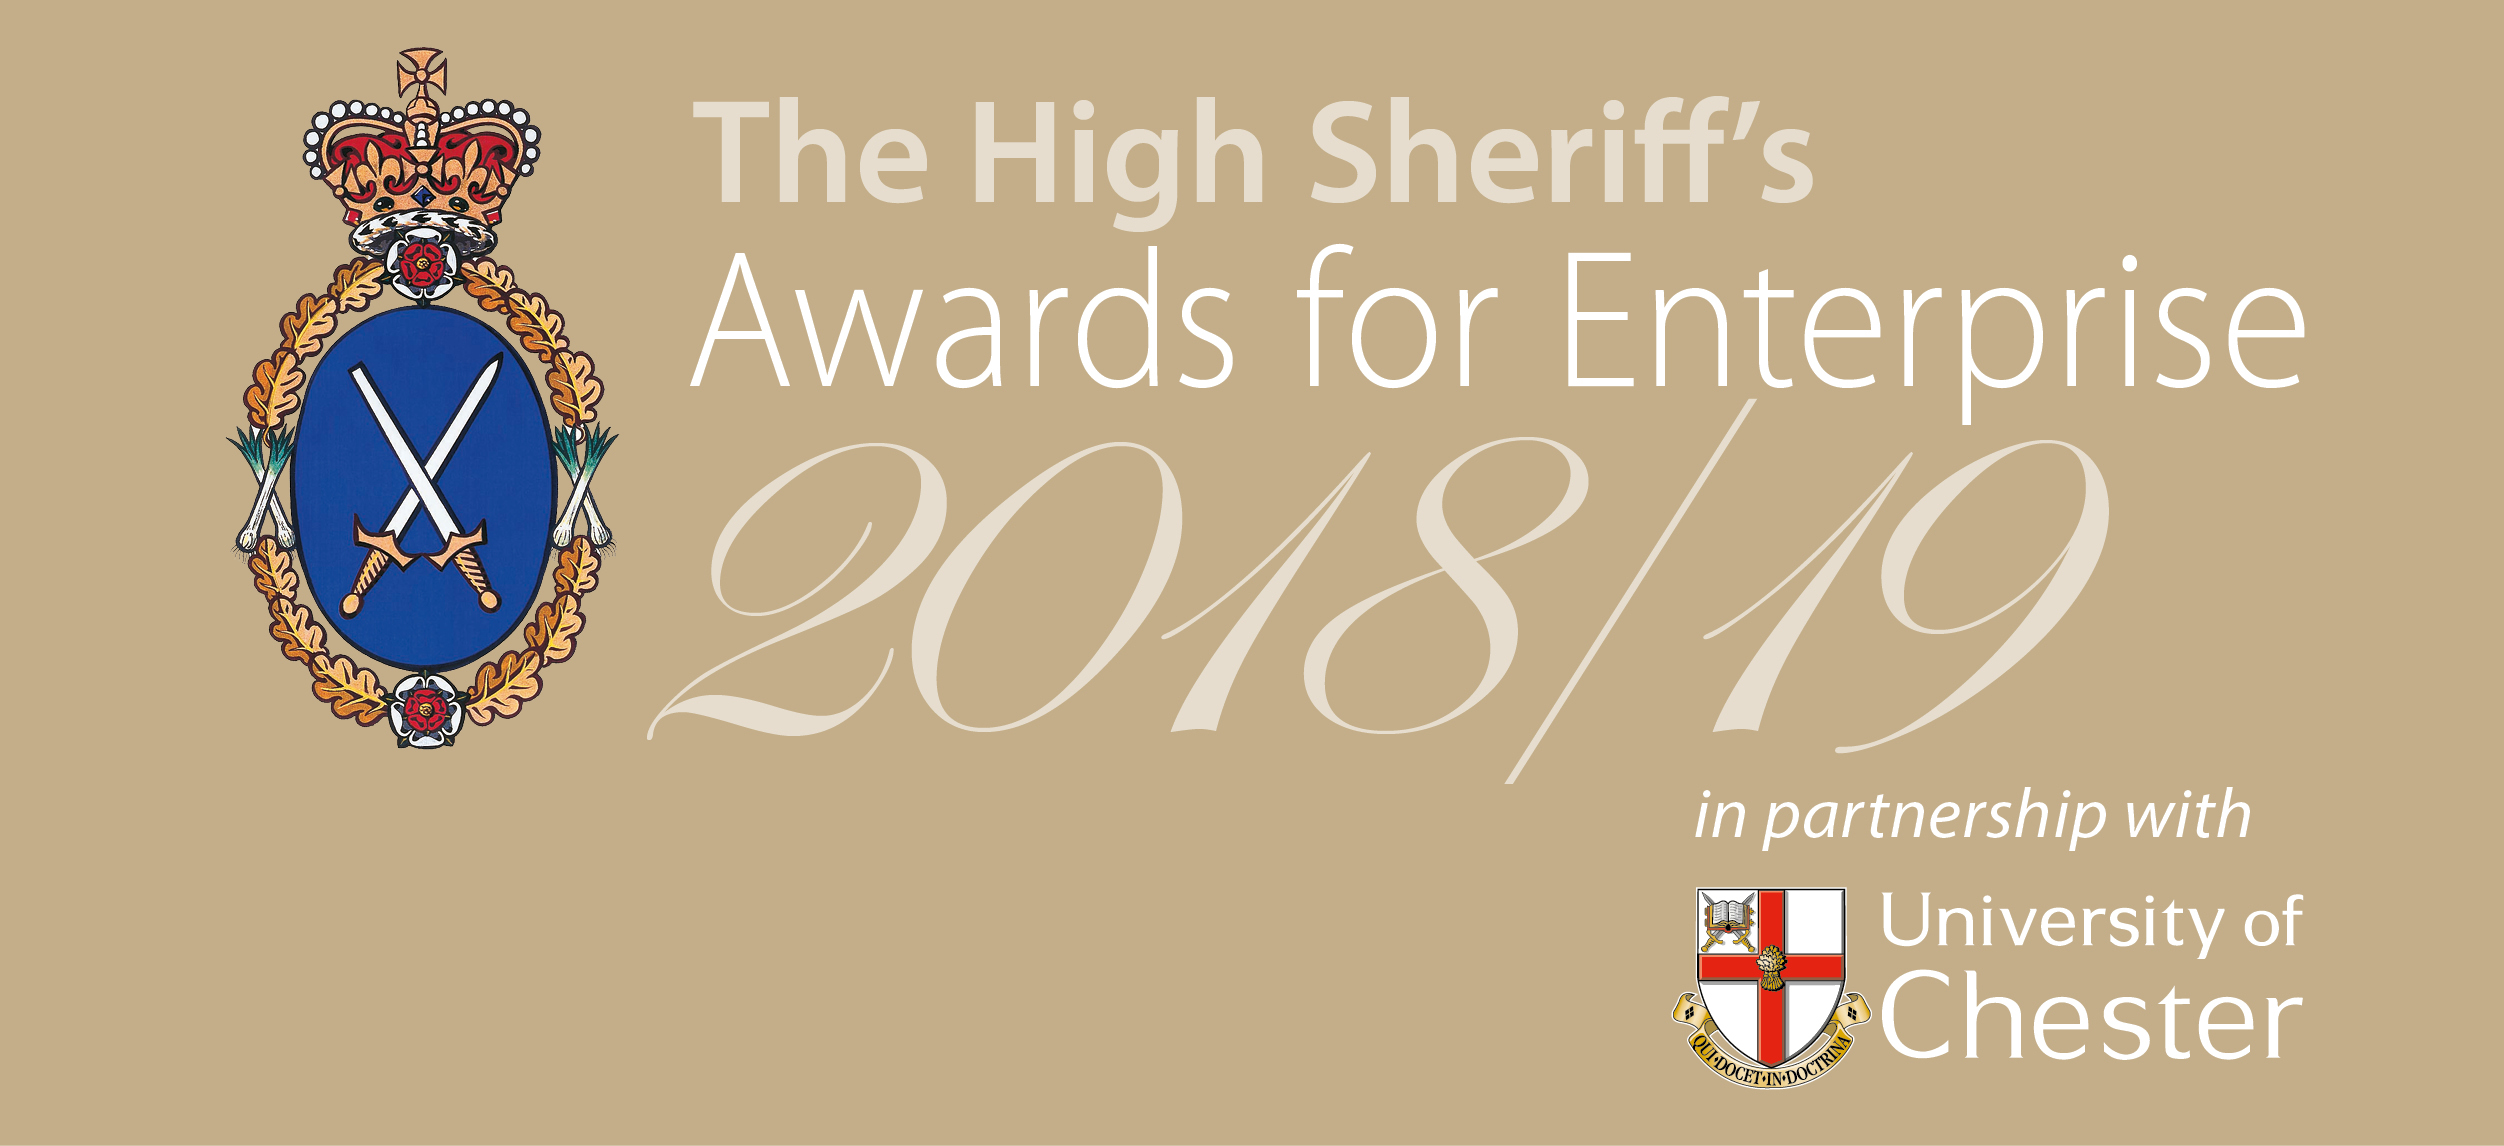 DriveWorks Wins Two High Sheriff's Awards for Enterprise